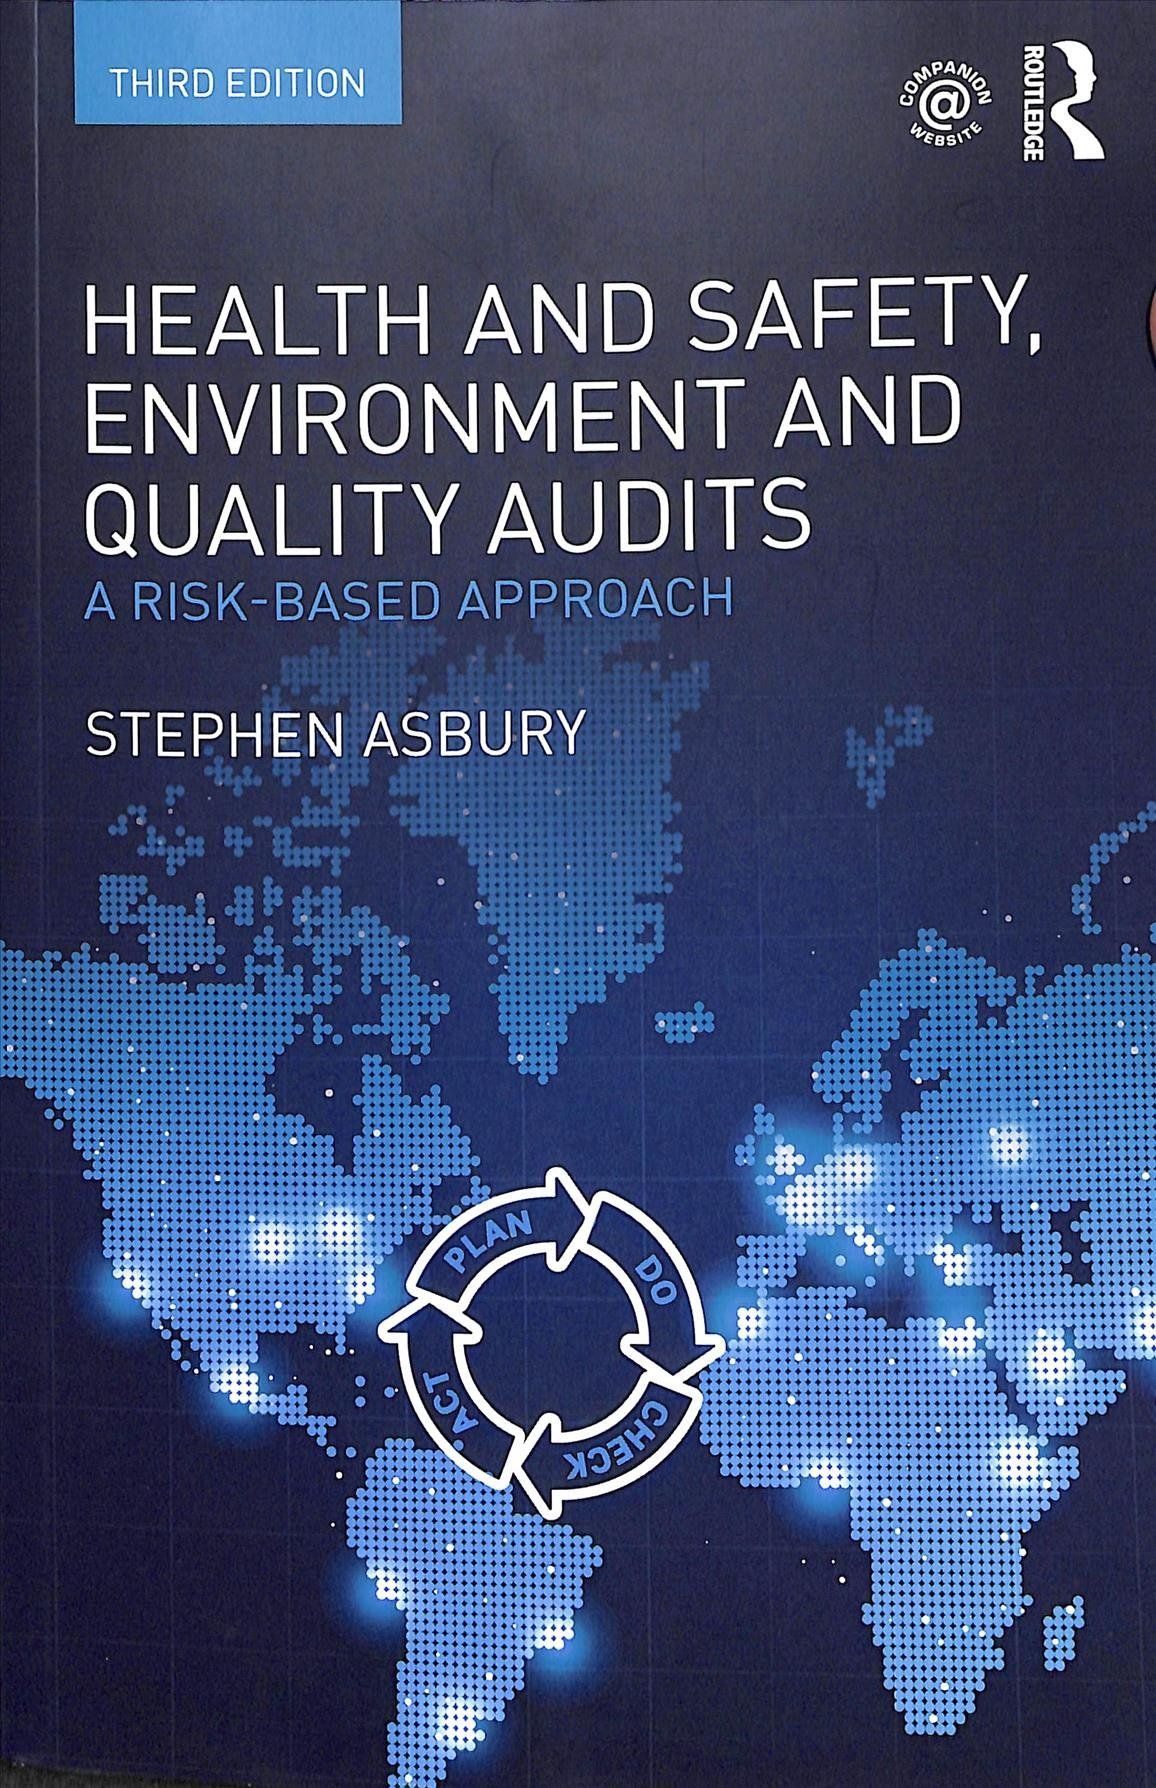 Health and Safety, Environment and Quality Audits A Risk